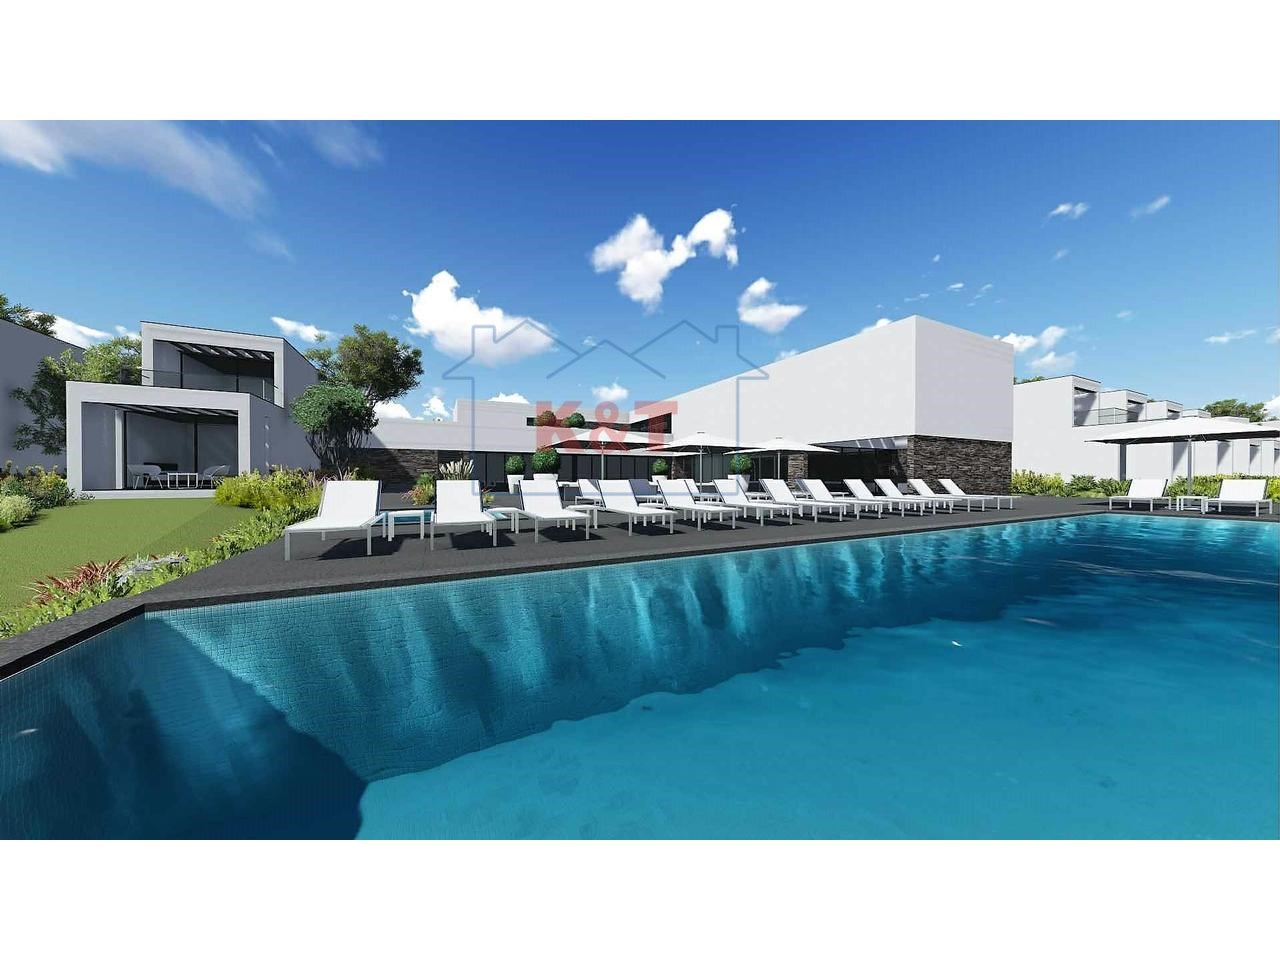 Hotel Rural 4 Stars With Swimming Pool In Design 10 16 Ha